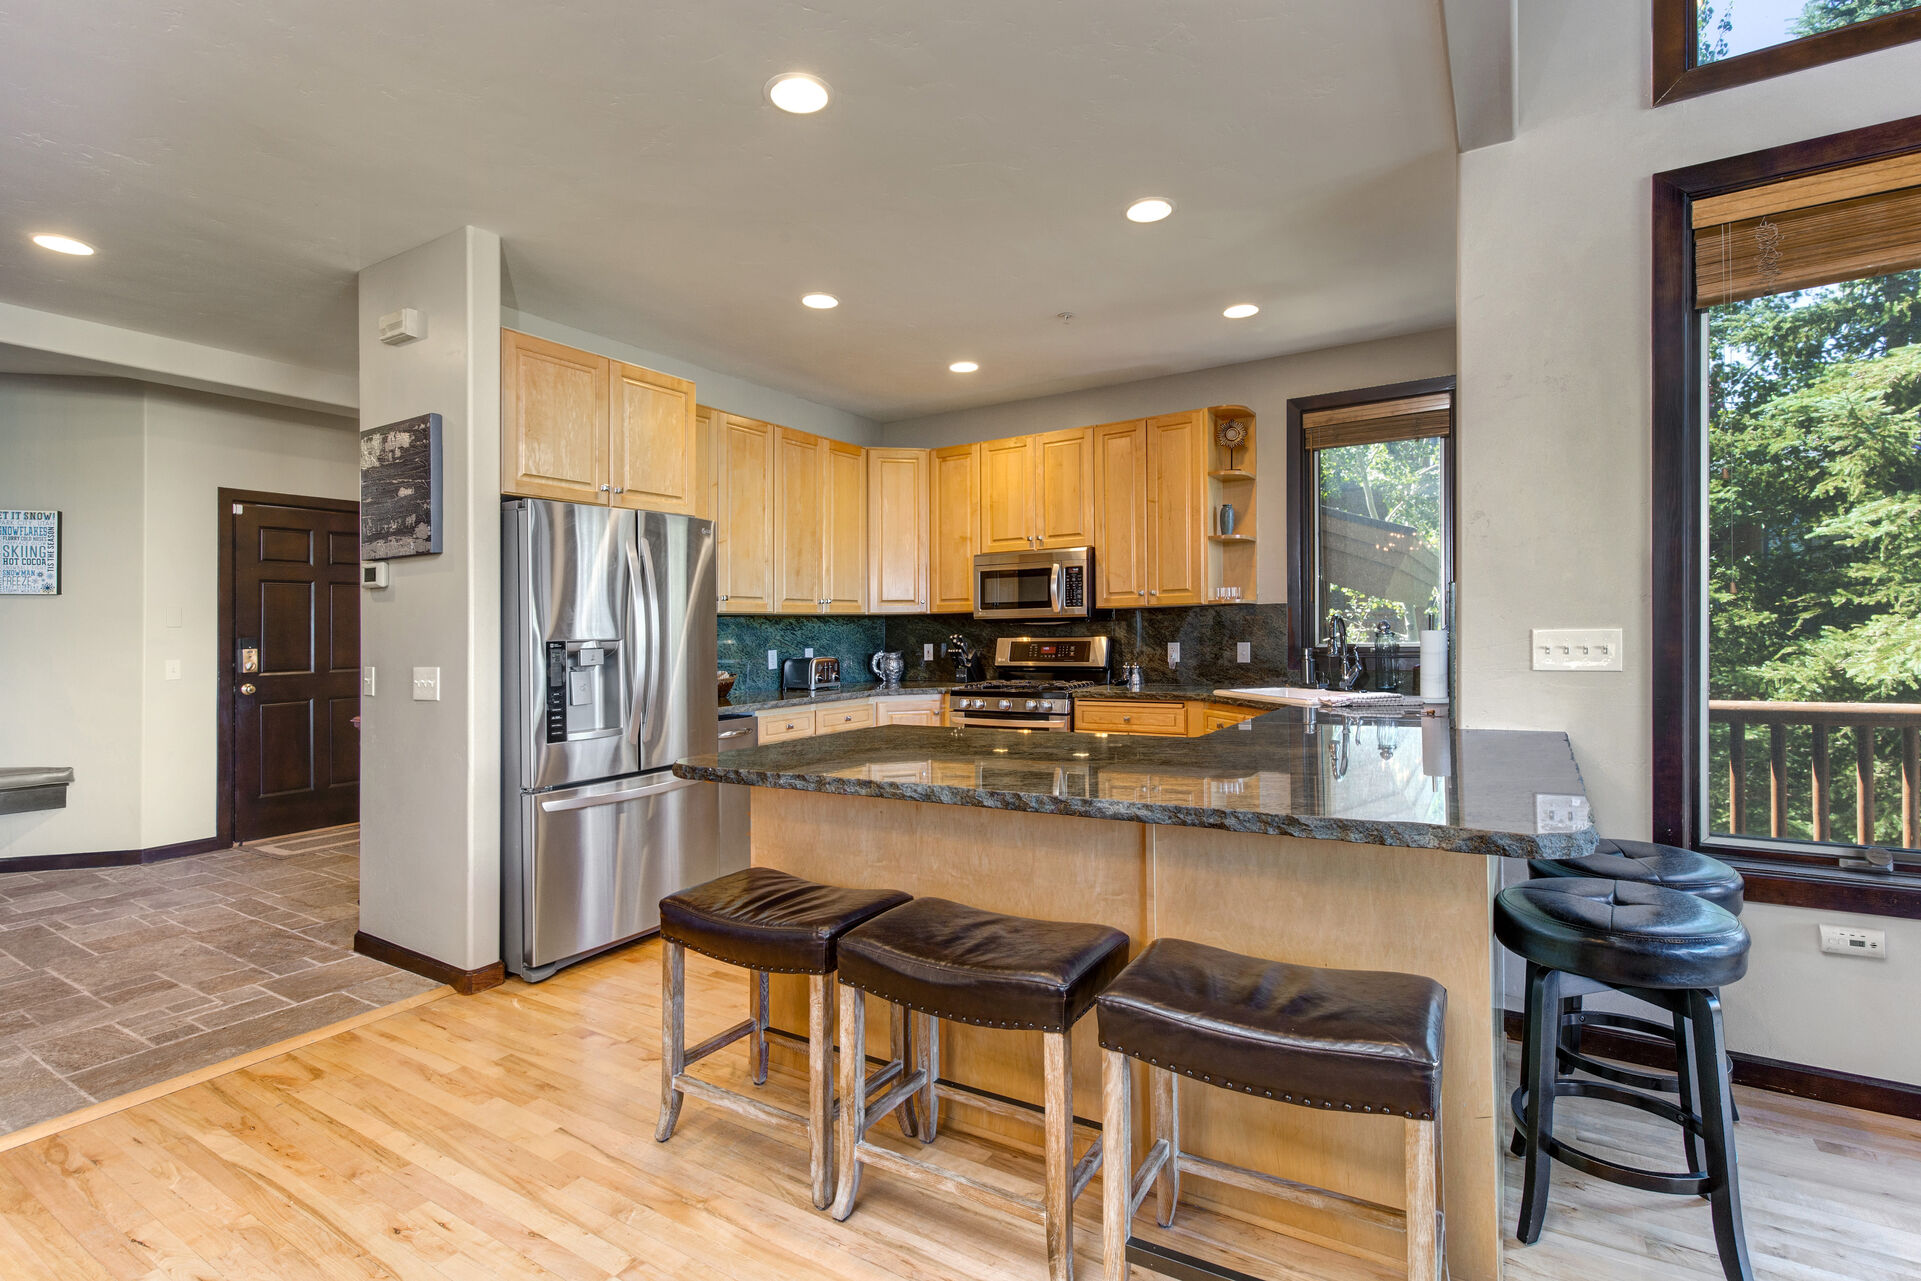 Condo Entry and Fully Equipped Kitchen